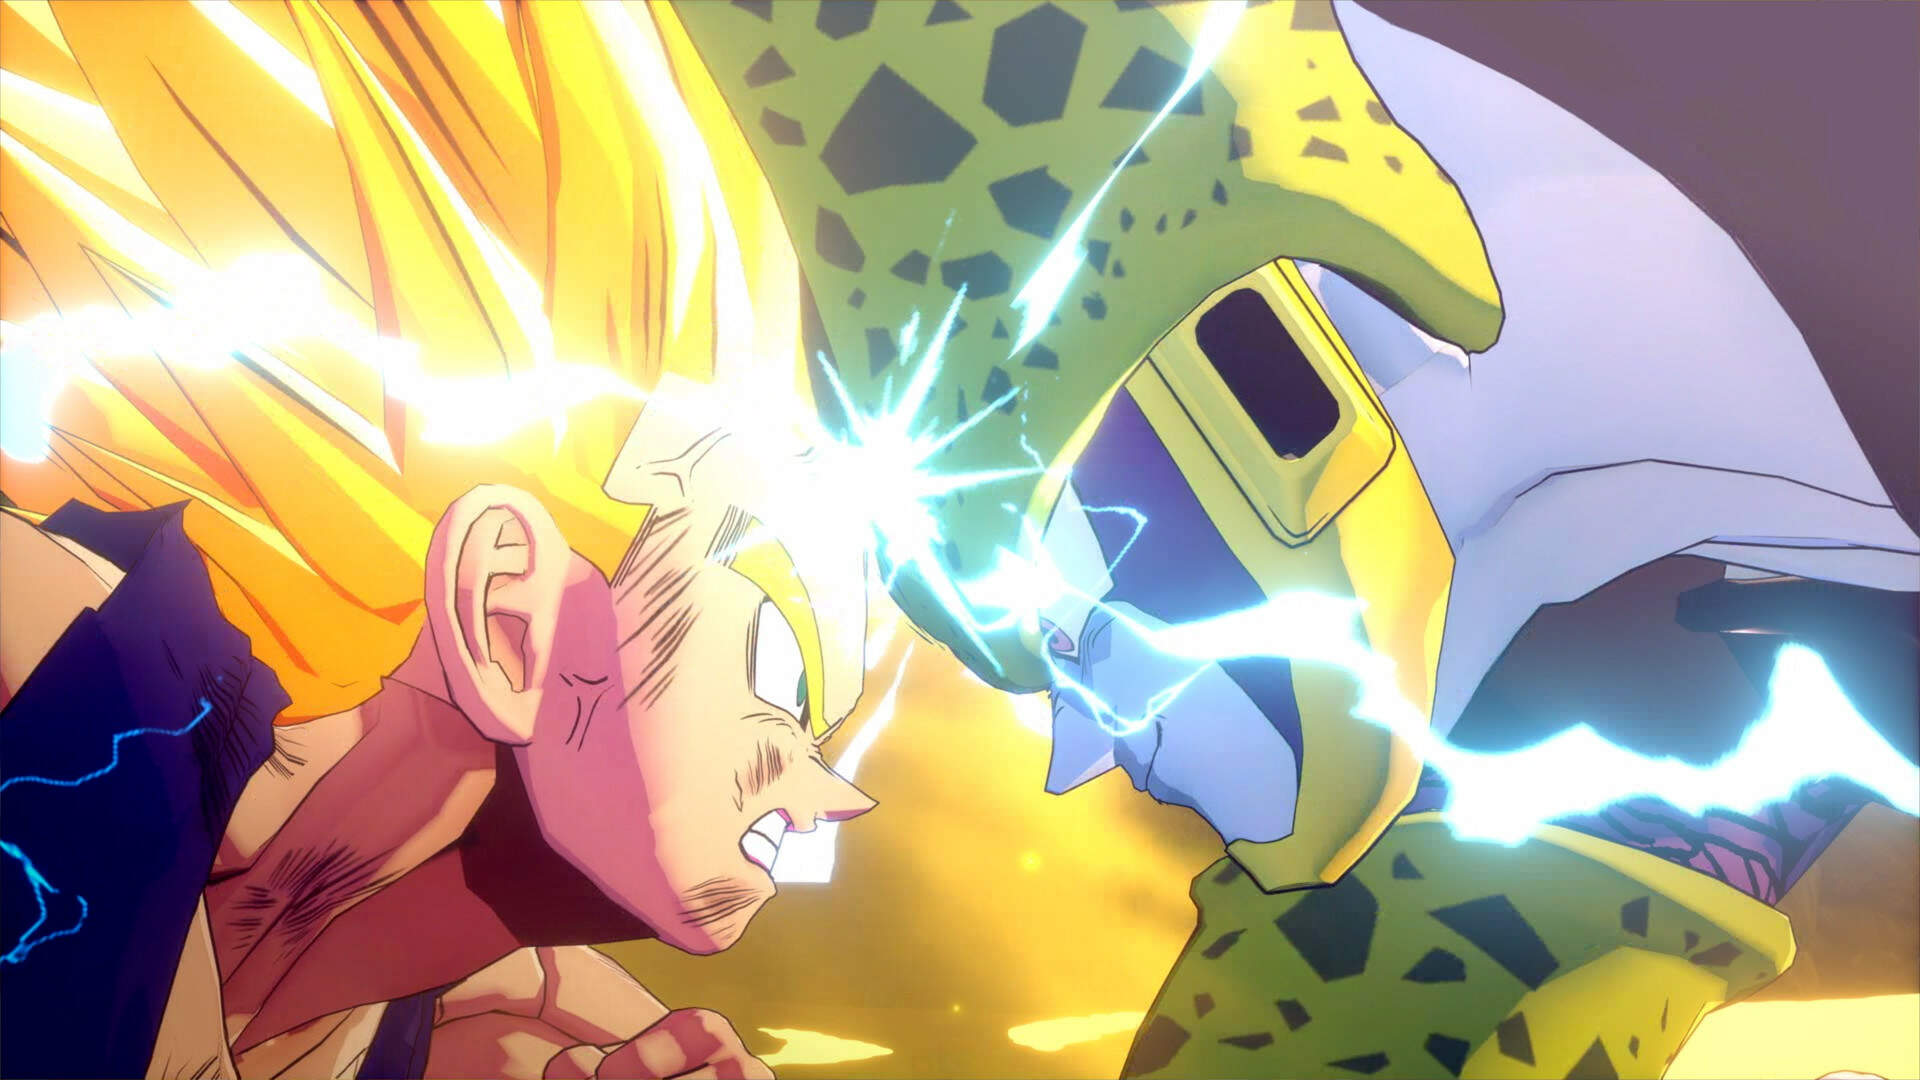 Dragon Ball Z Kakarot Multiplayer: Is There Online Co-Op Or Multiplayer?